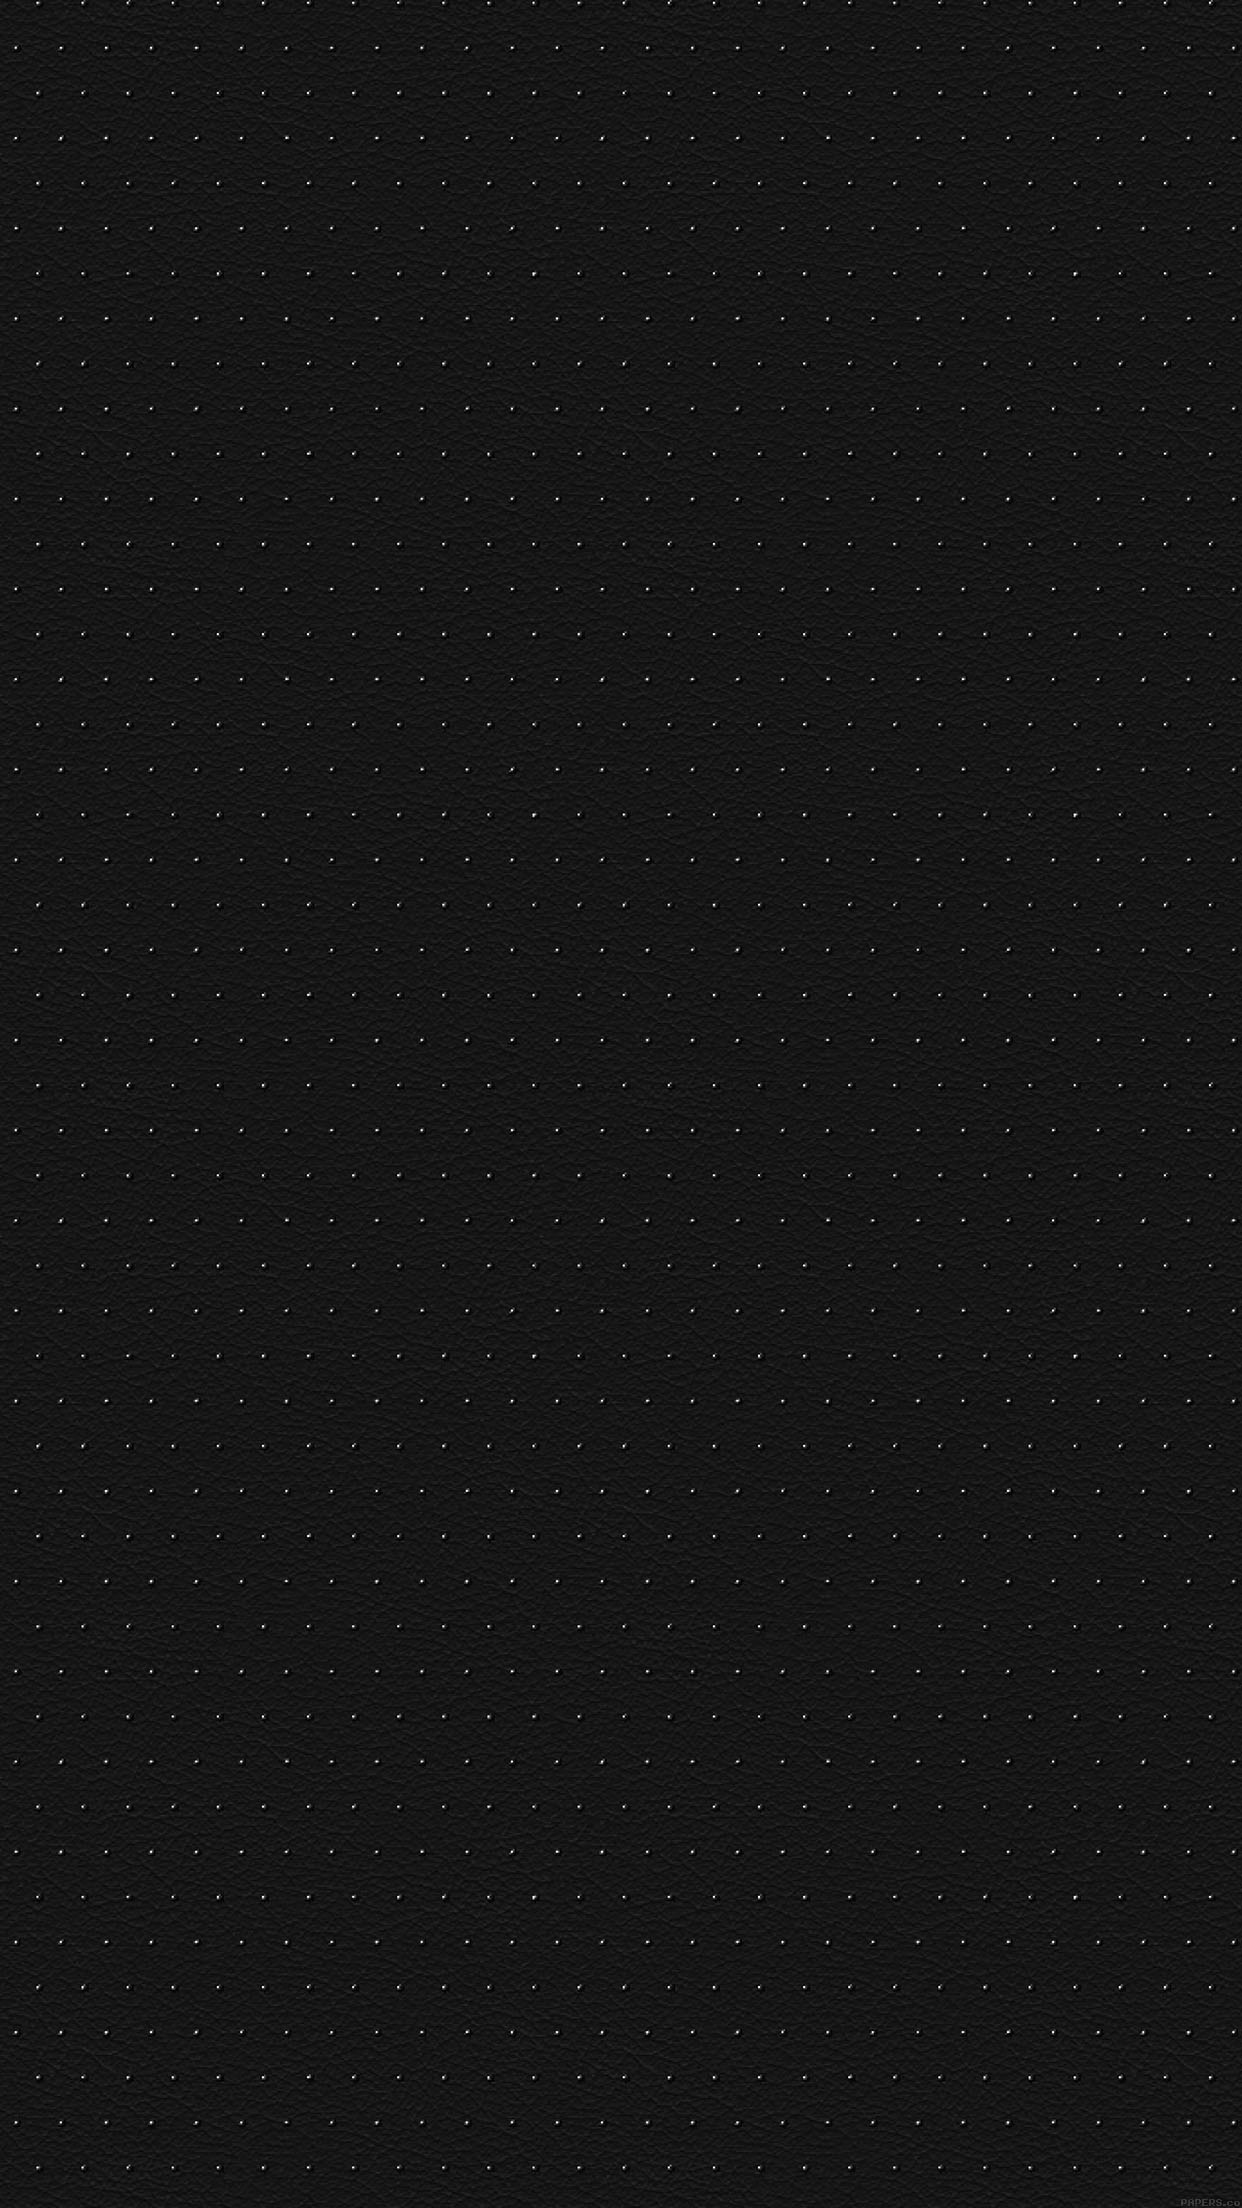 Plain Black Iphone Wallpaper Dark Wallpapers To Compliment Your New Iphone 7